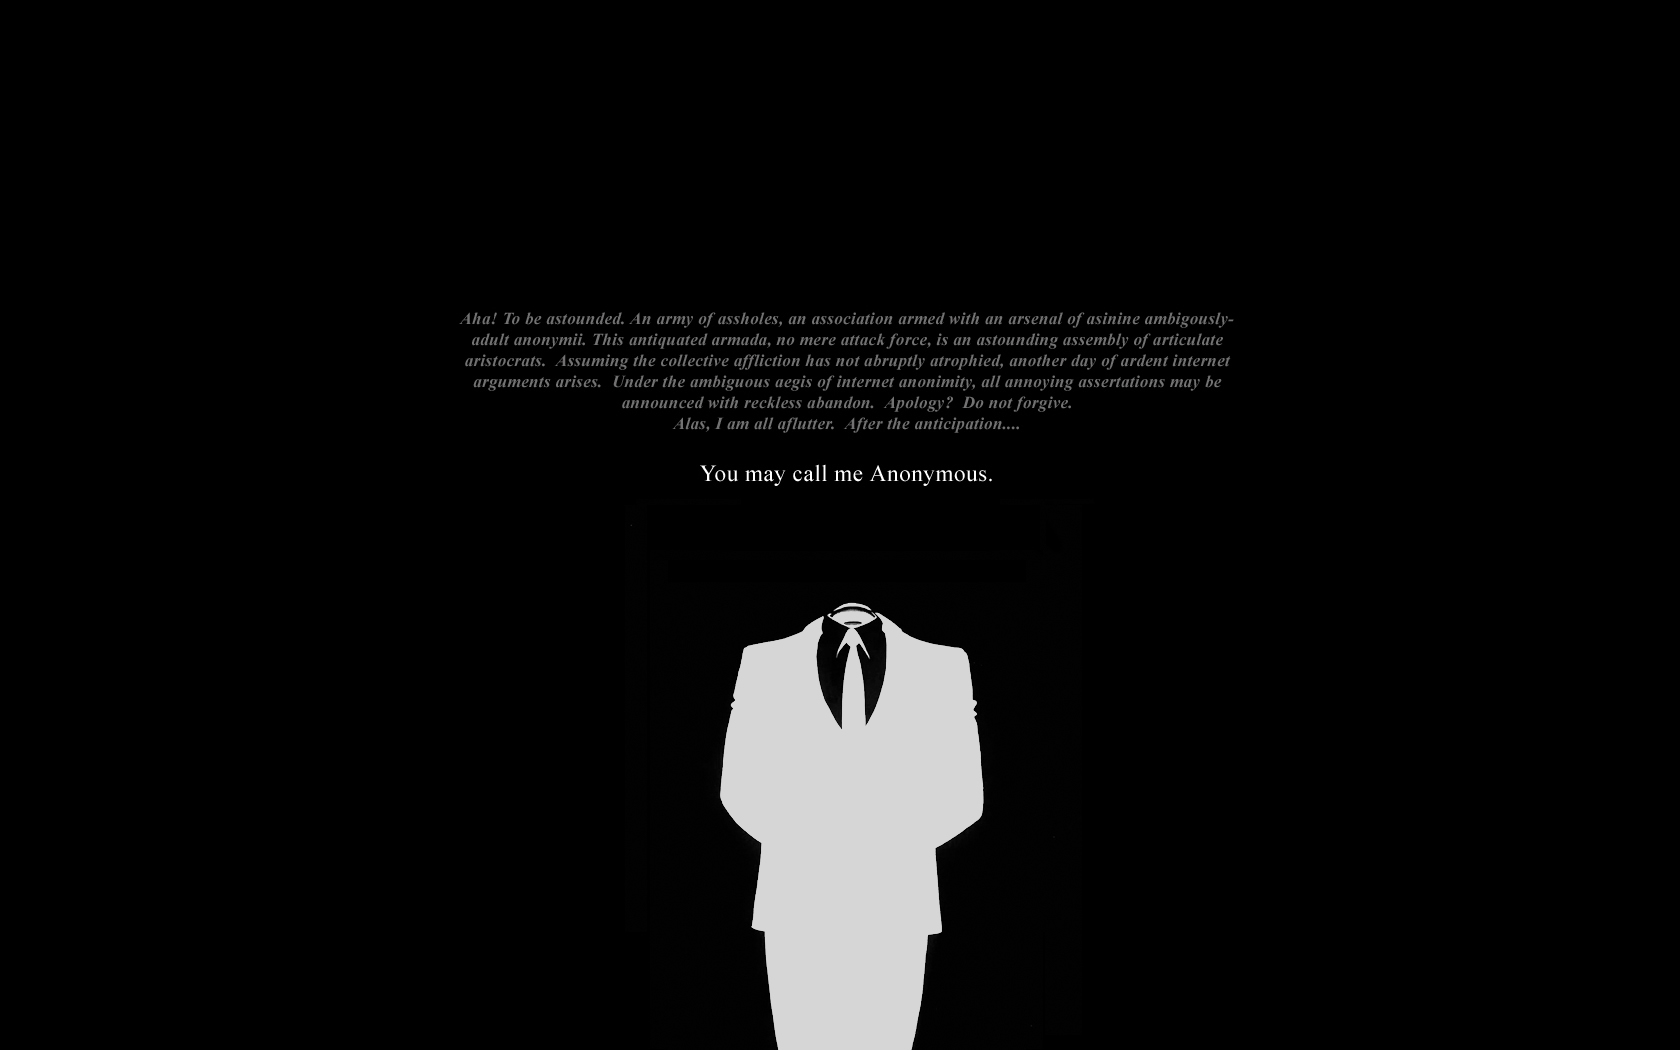 Cool Quote Anonymous Wallpaper 17197 Wallpaper High Resolution 1680x1050